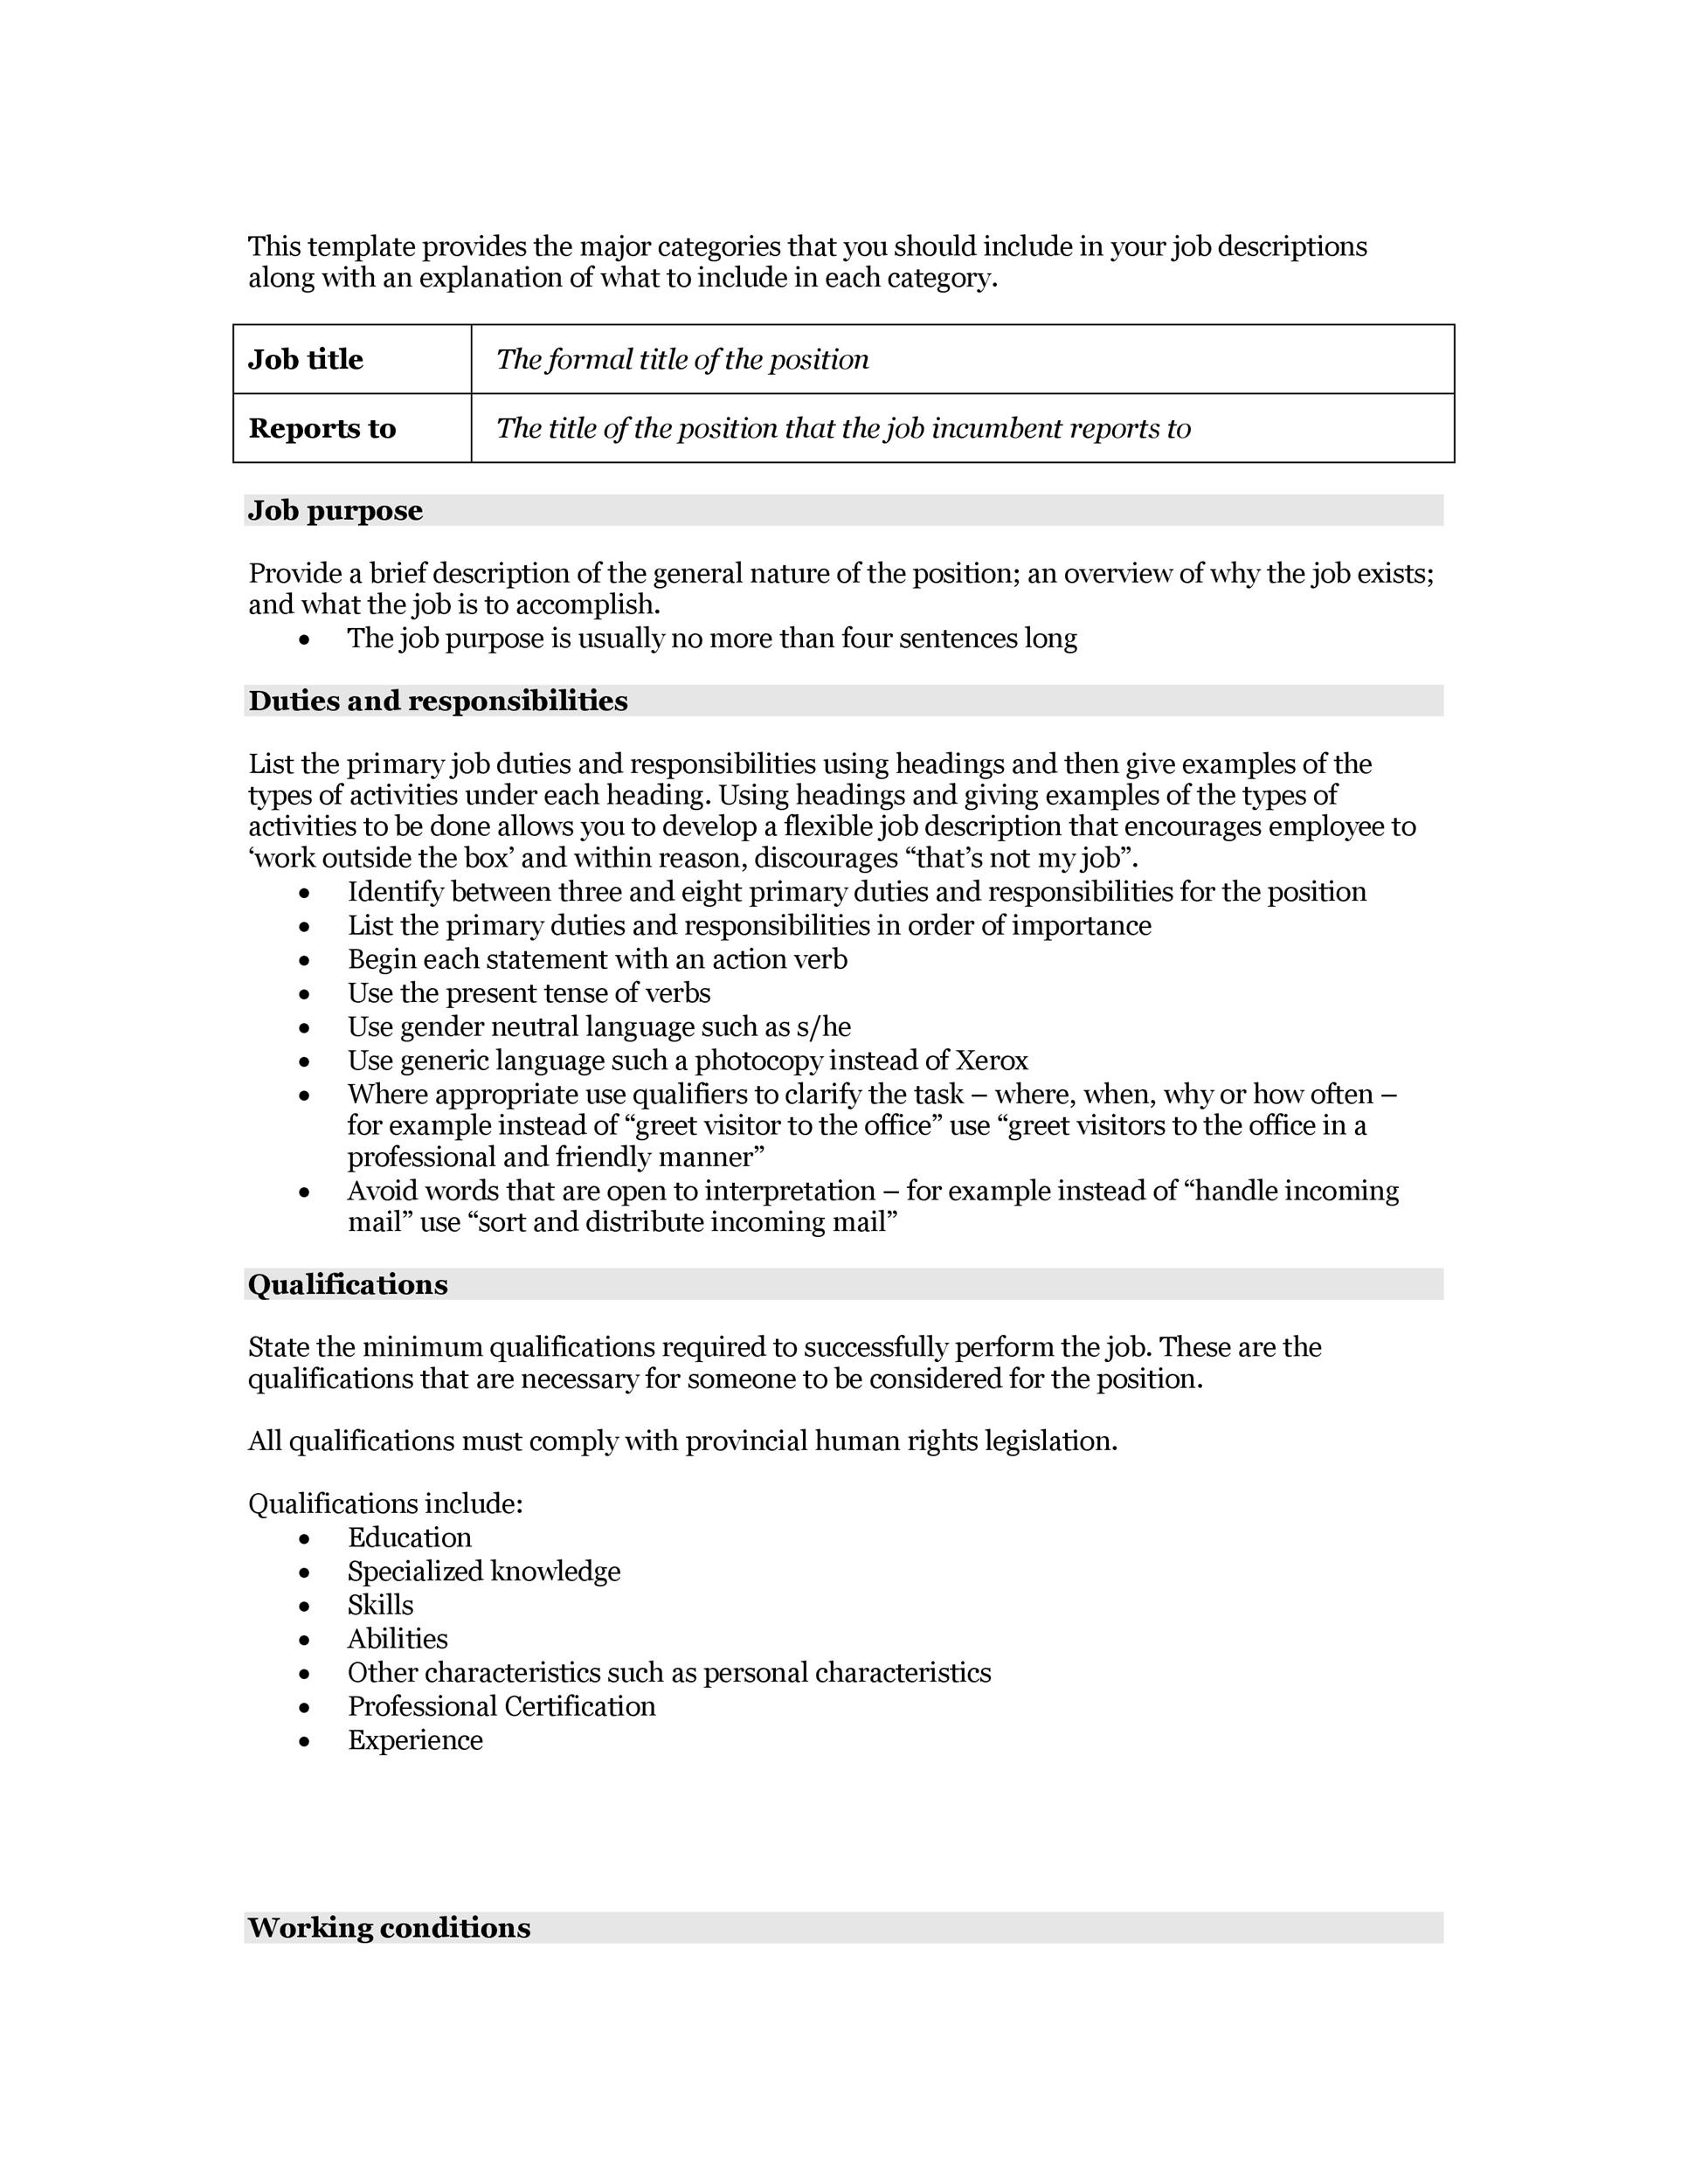 Job descriptions template job description template for Creating job descriptions template